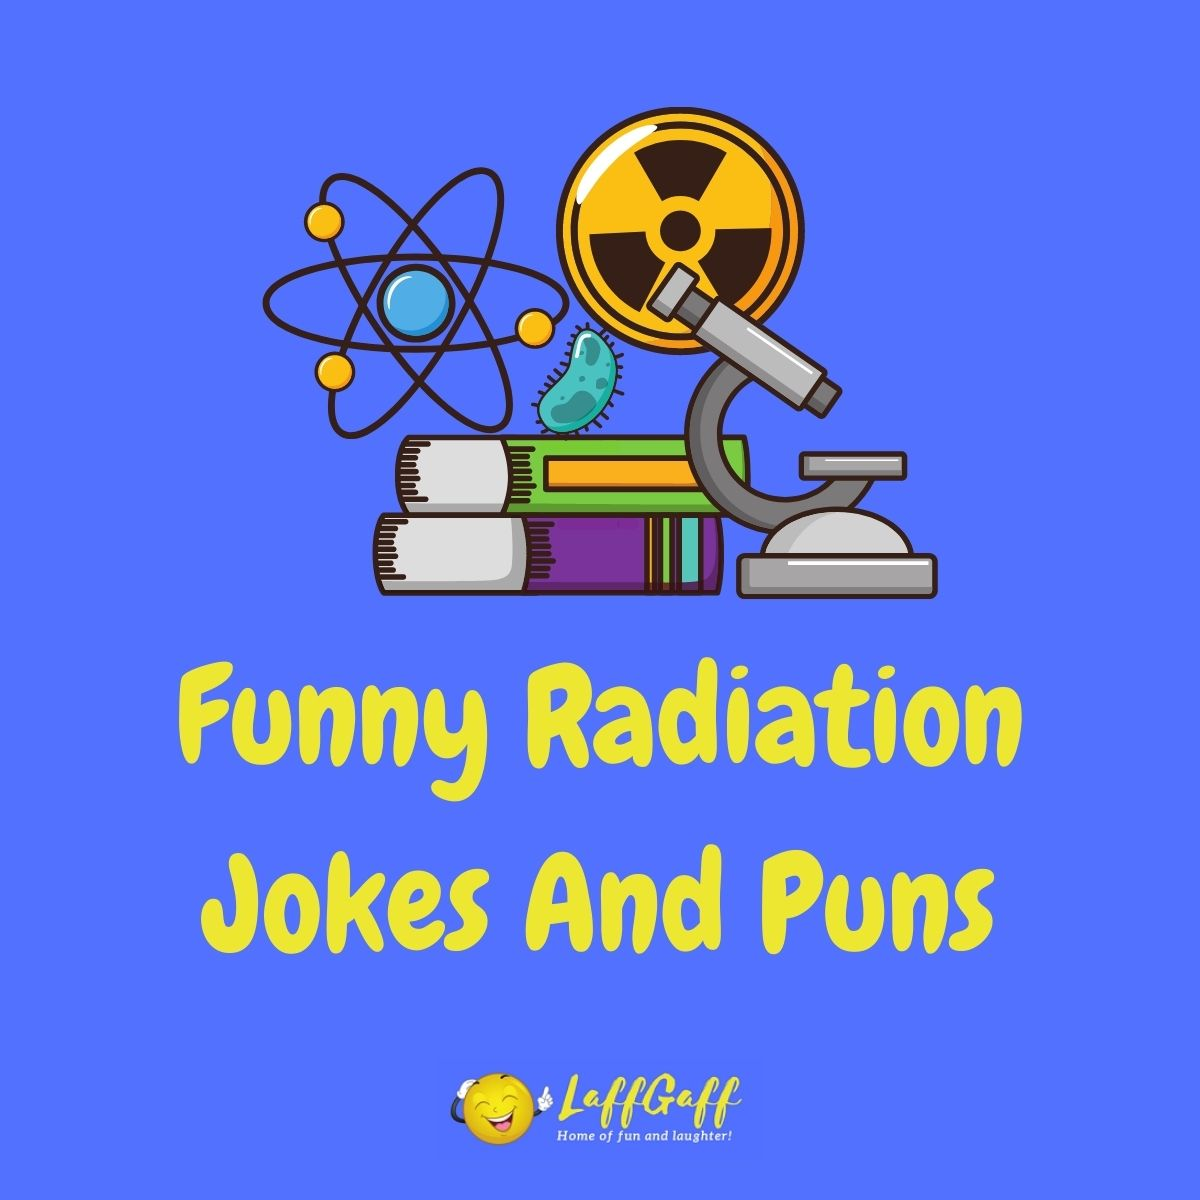 Featured image for a page of funny radiation jokes and puns.